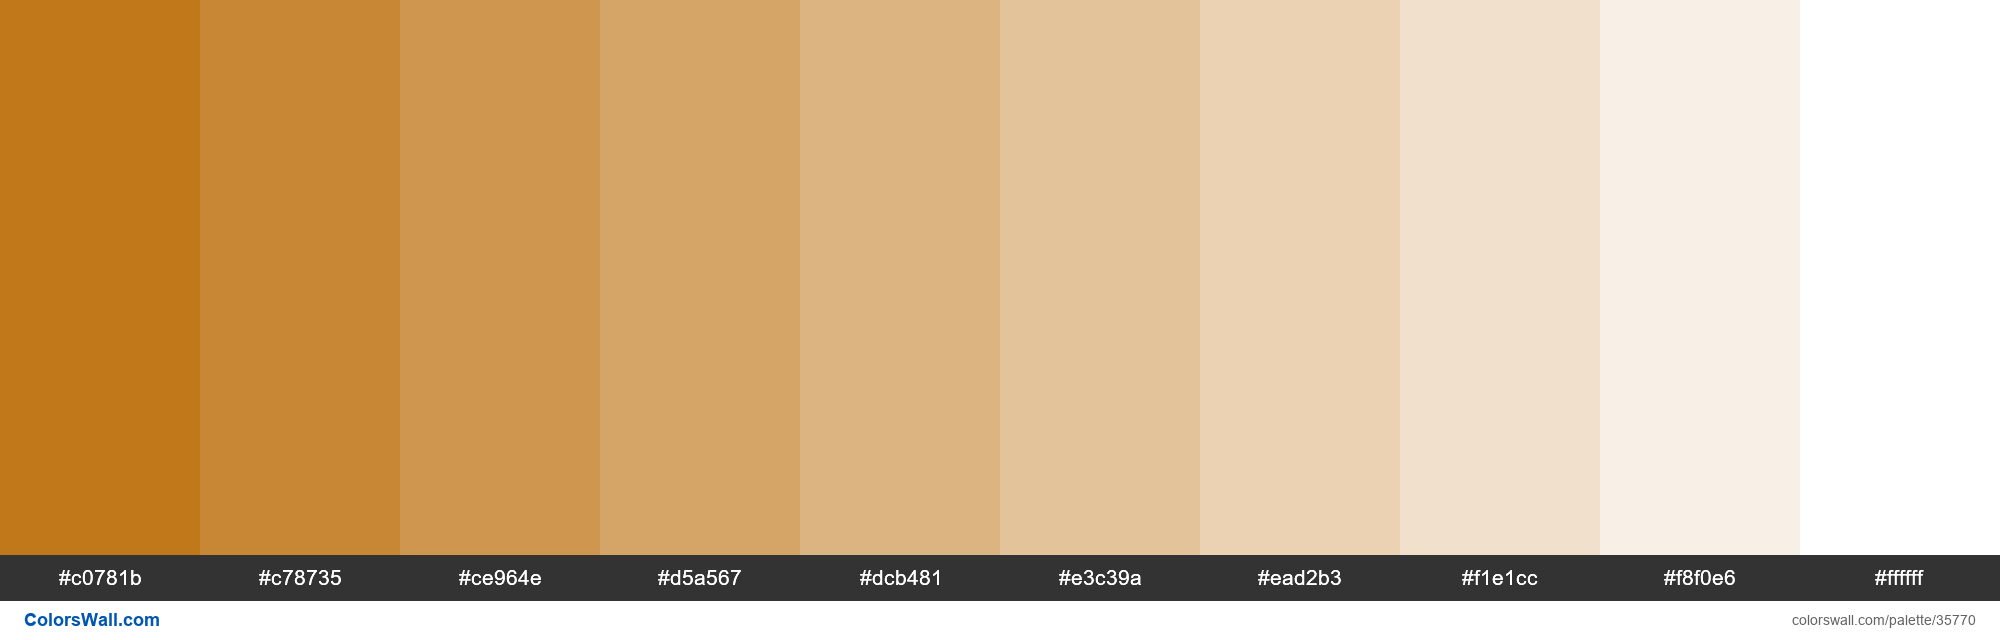 Tints XKCD Color brown orange #b96902 hex - #35770